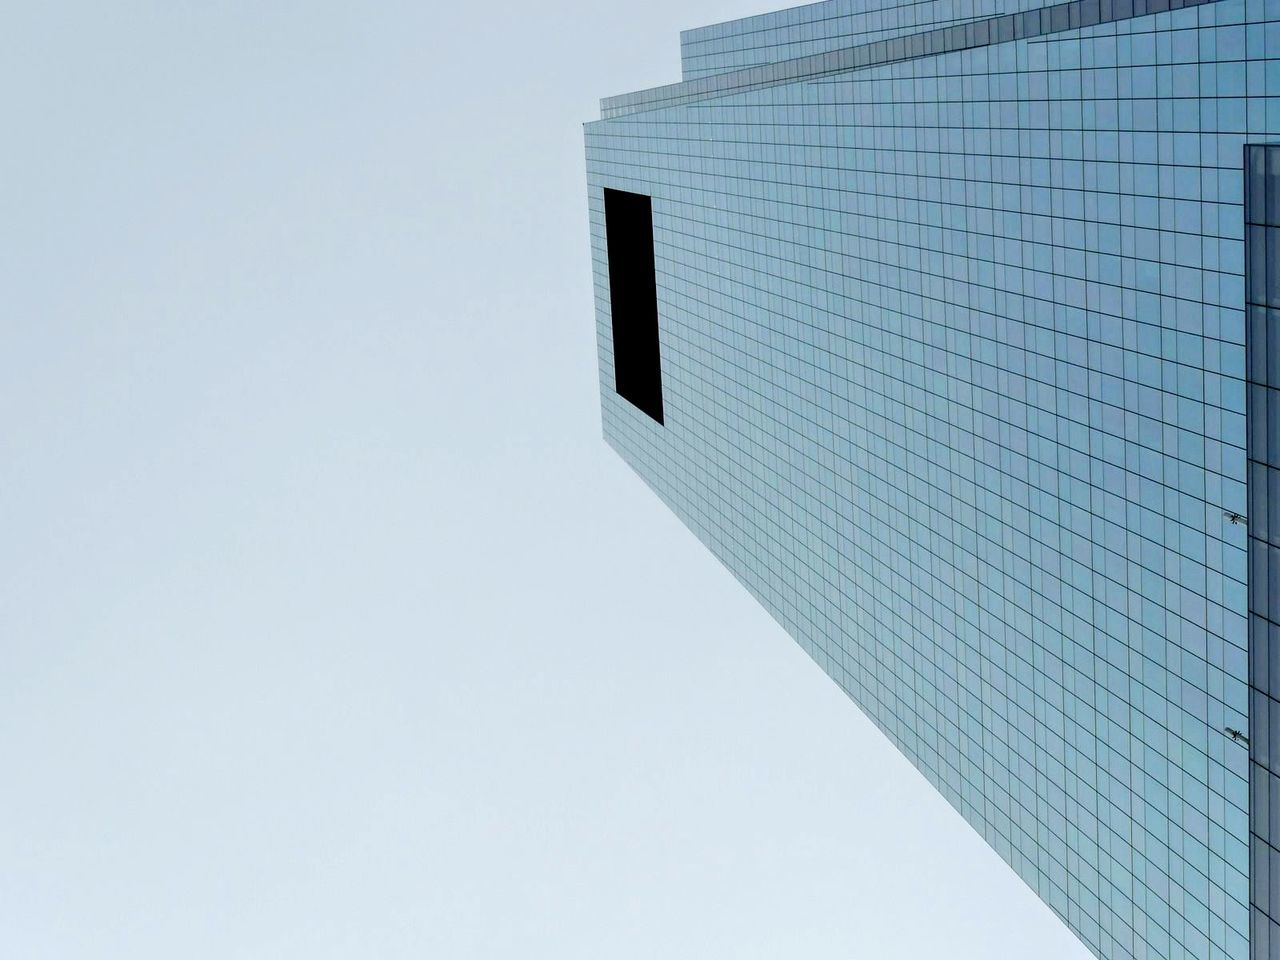 Architecture City Glass Modern Perspective Philly Urban USA Wall - Building Feature Window